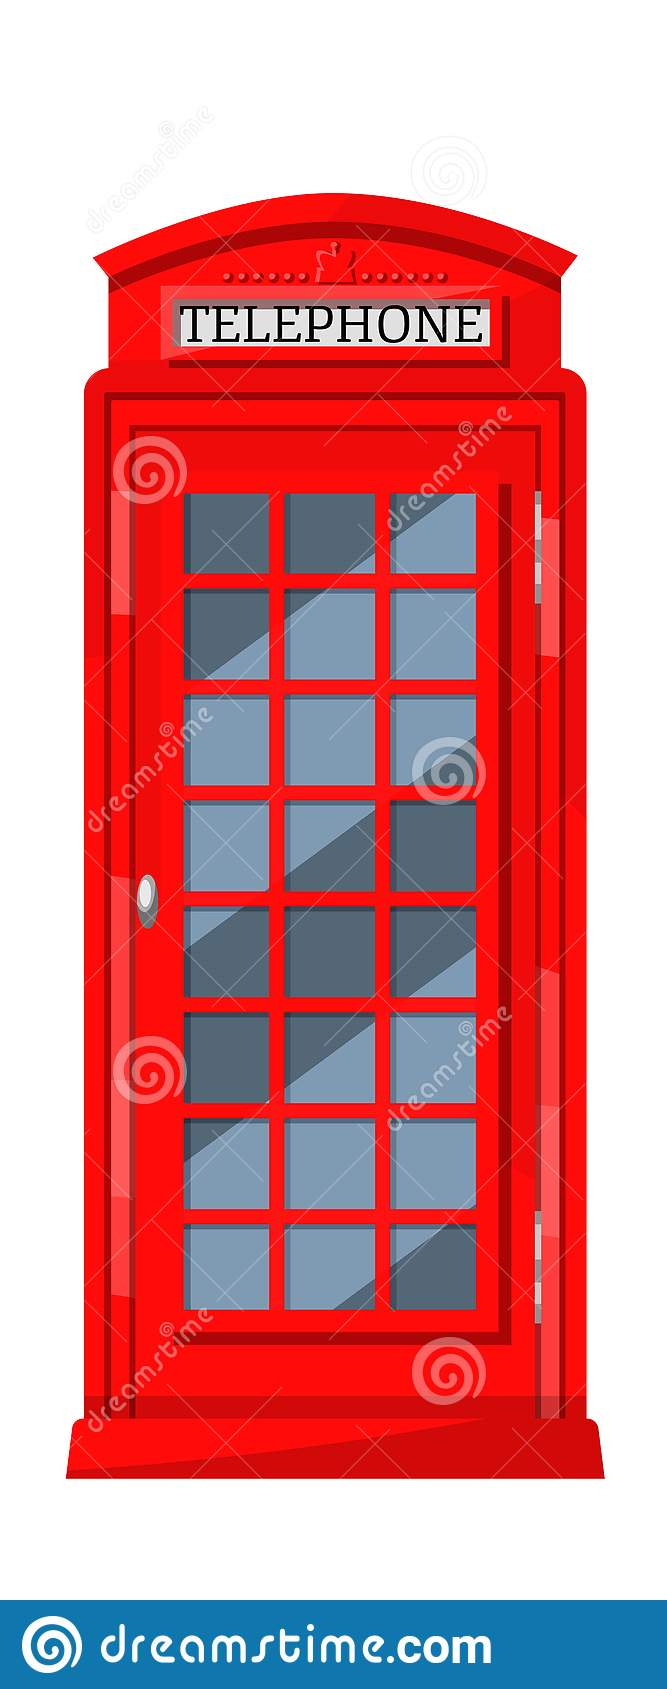 London red telephone booth with payphones. Cabin booth, communication device.